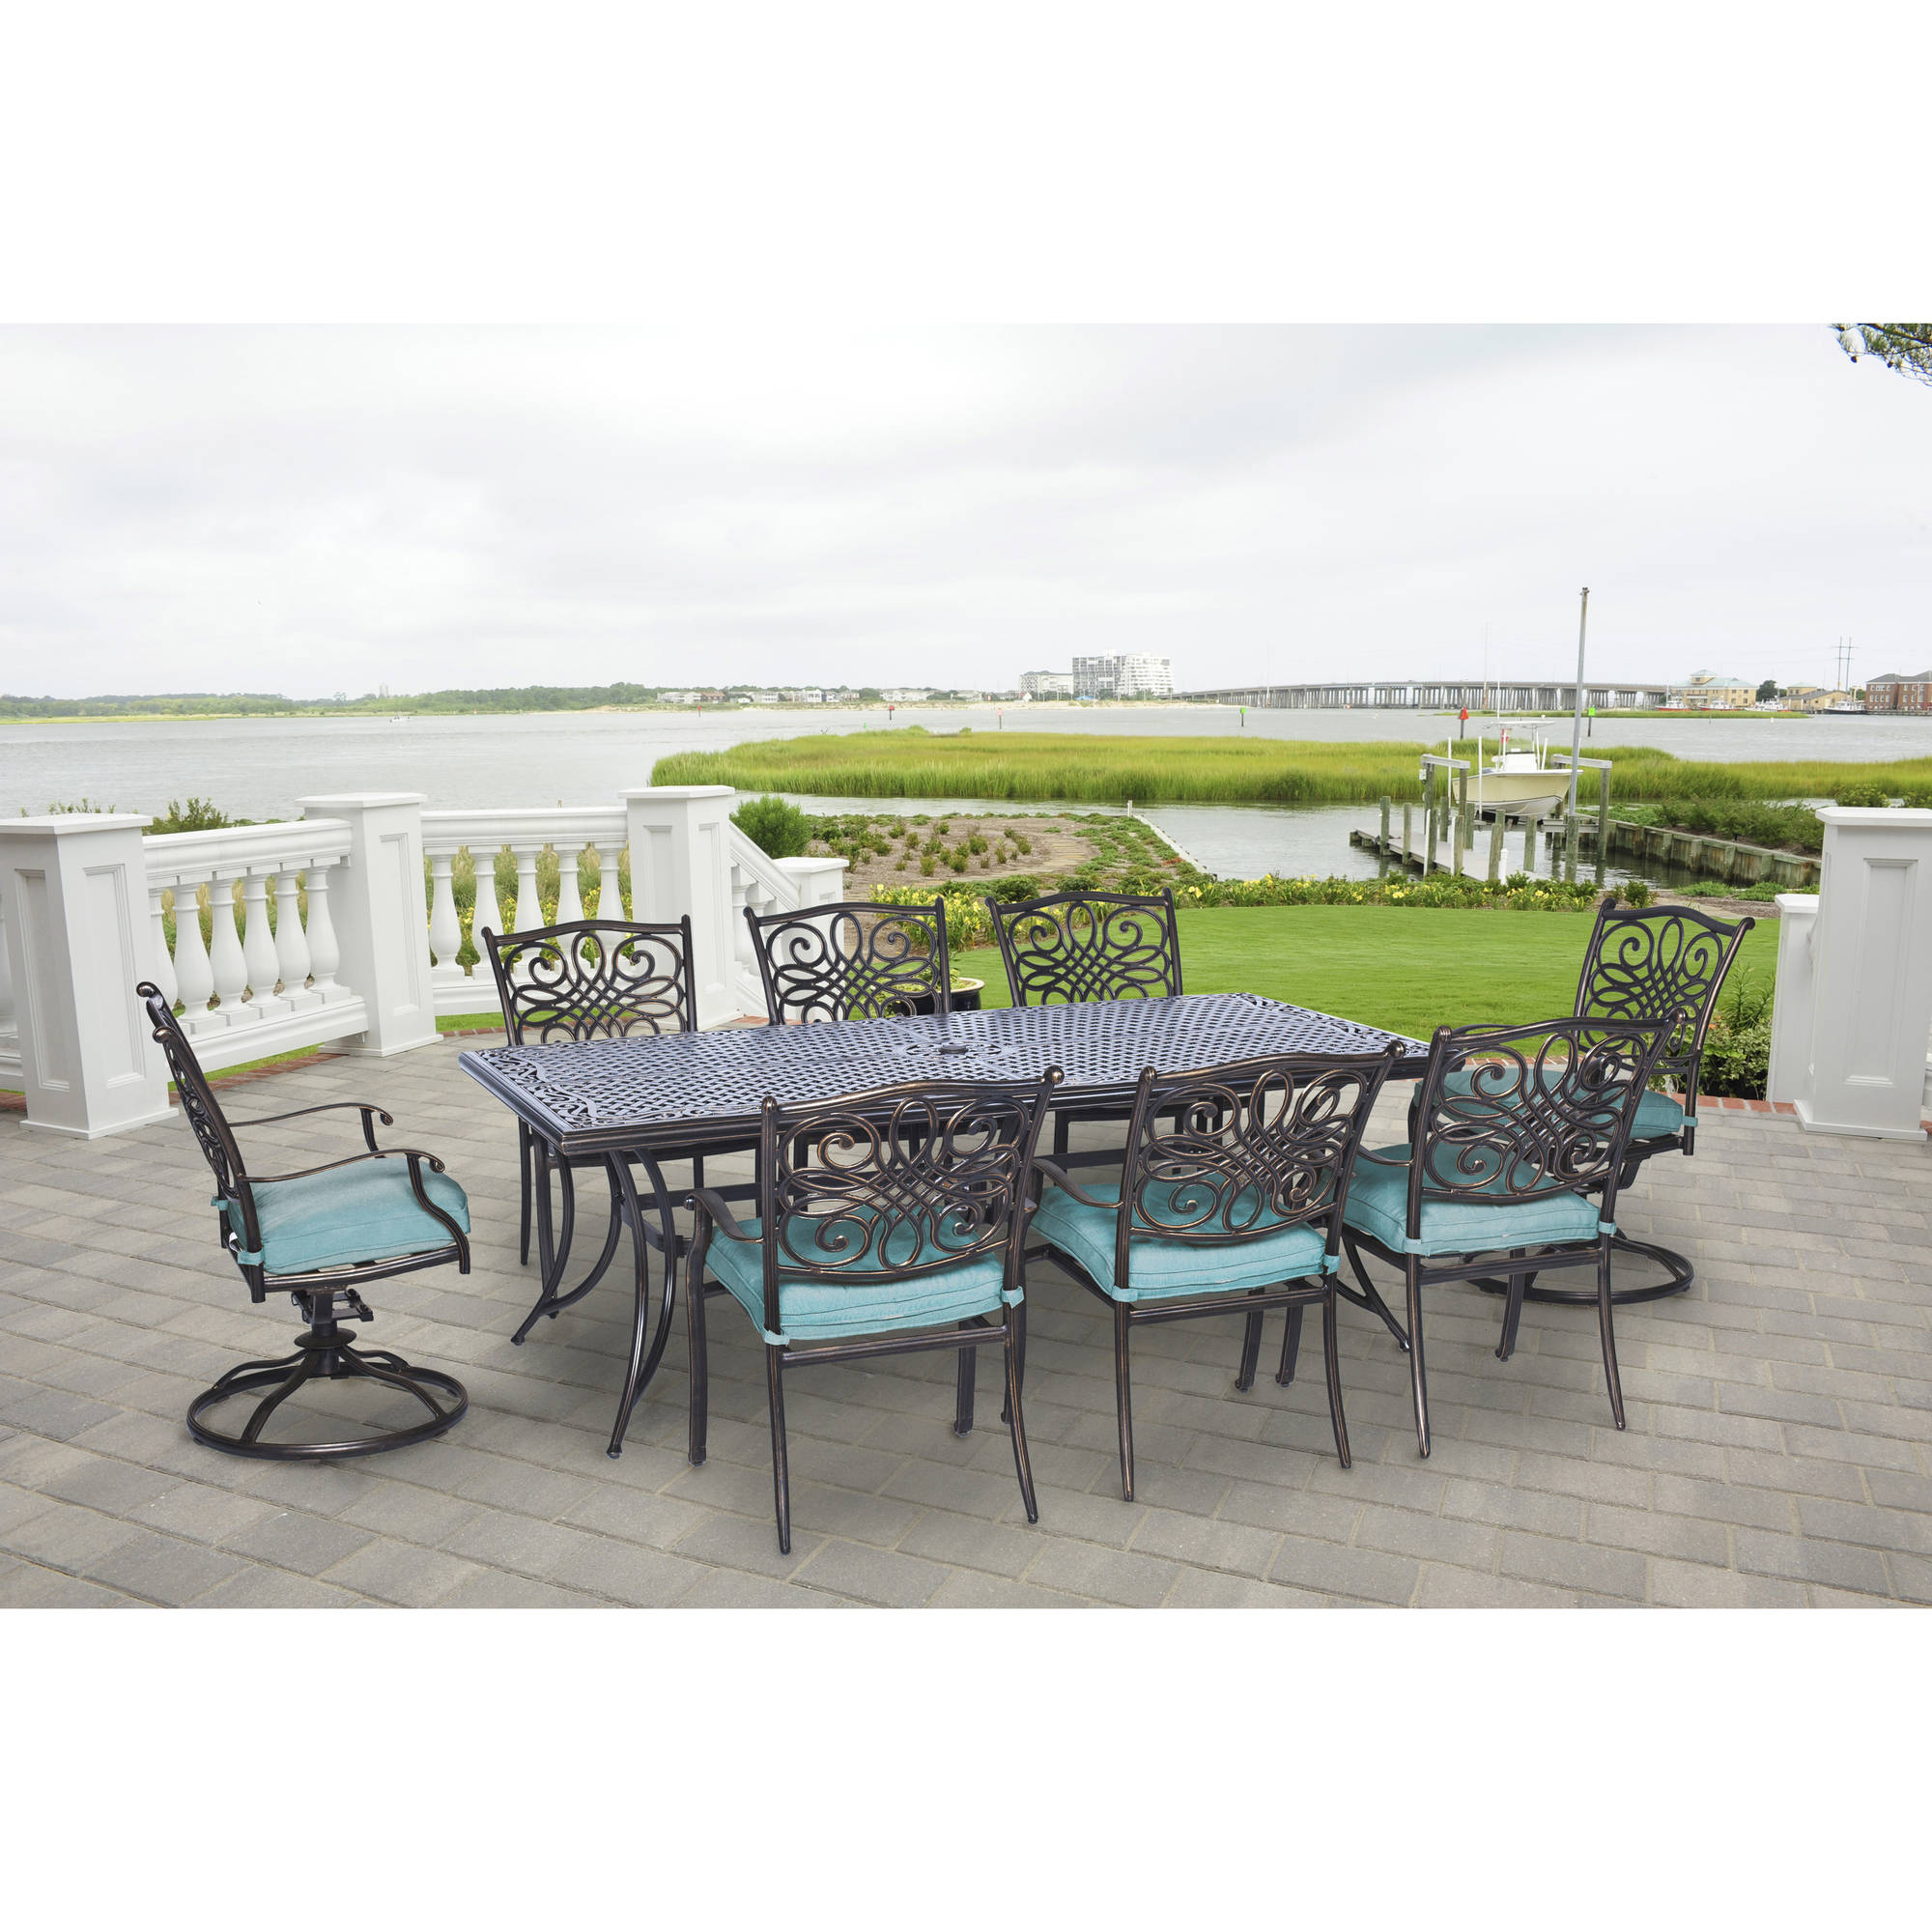 Hanover Traditions 9-Piece Cast-Top Outdoor Dining Set with 2 Swivel Rockers